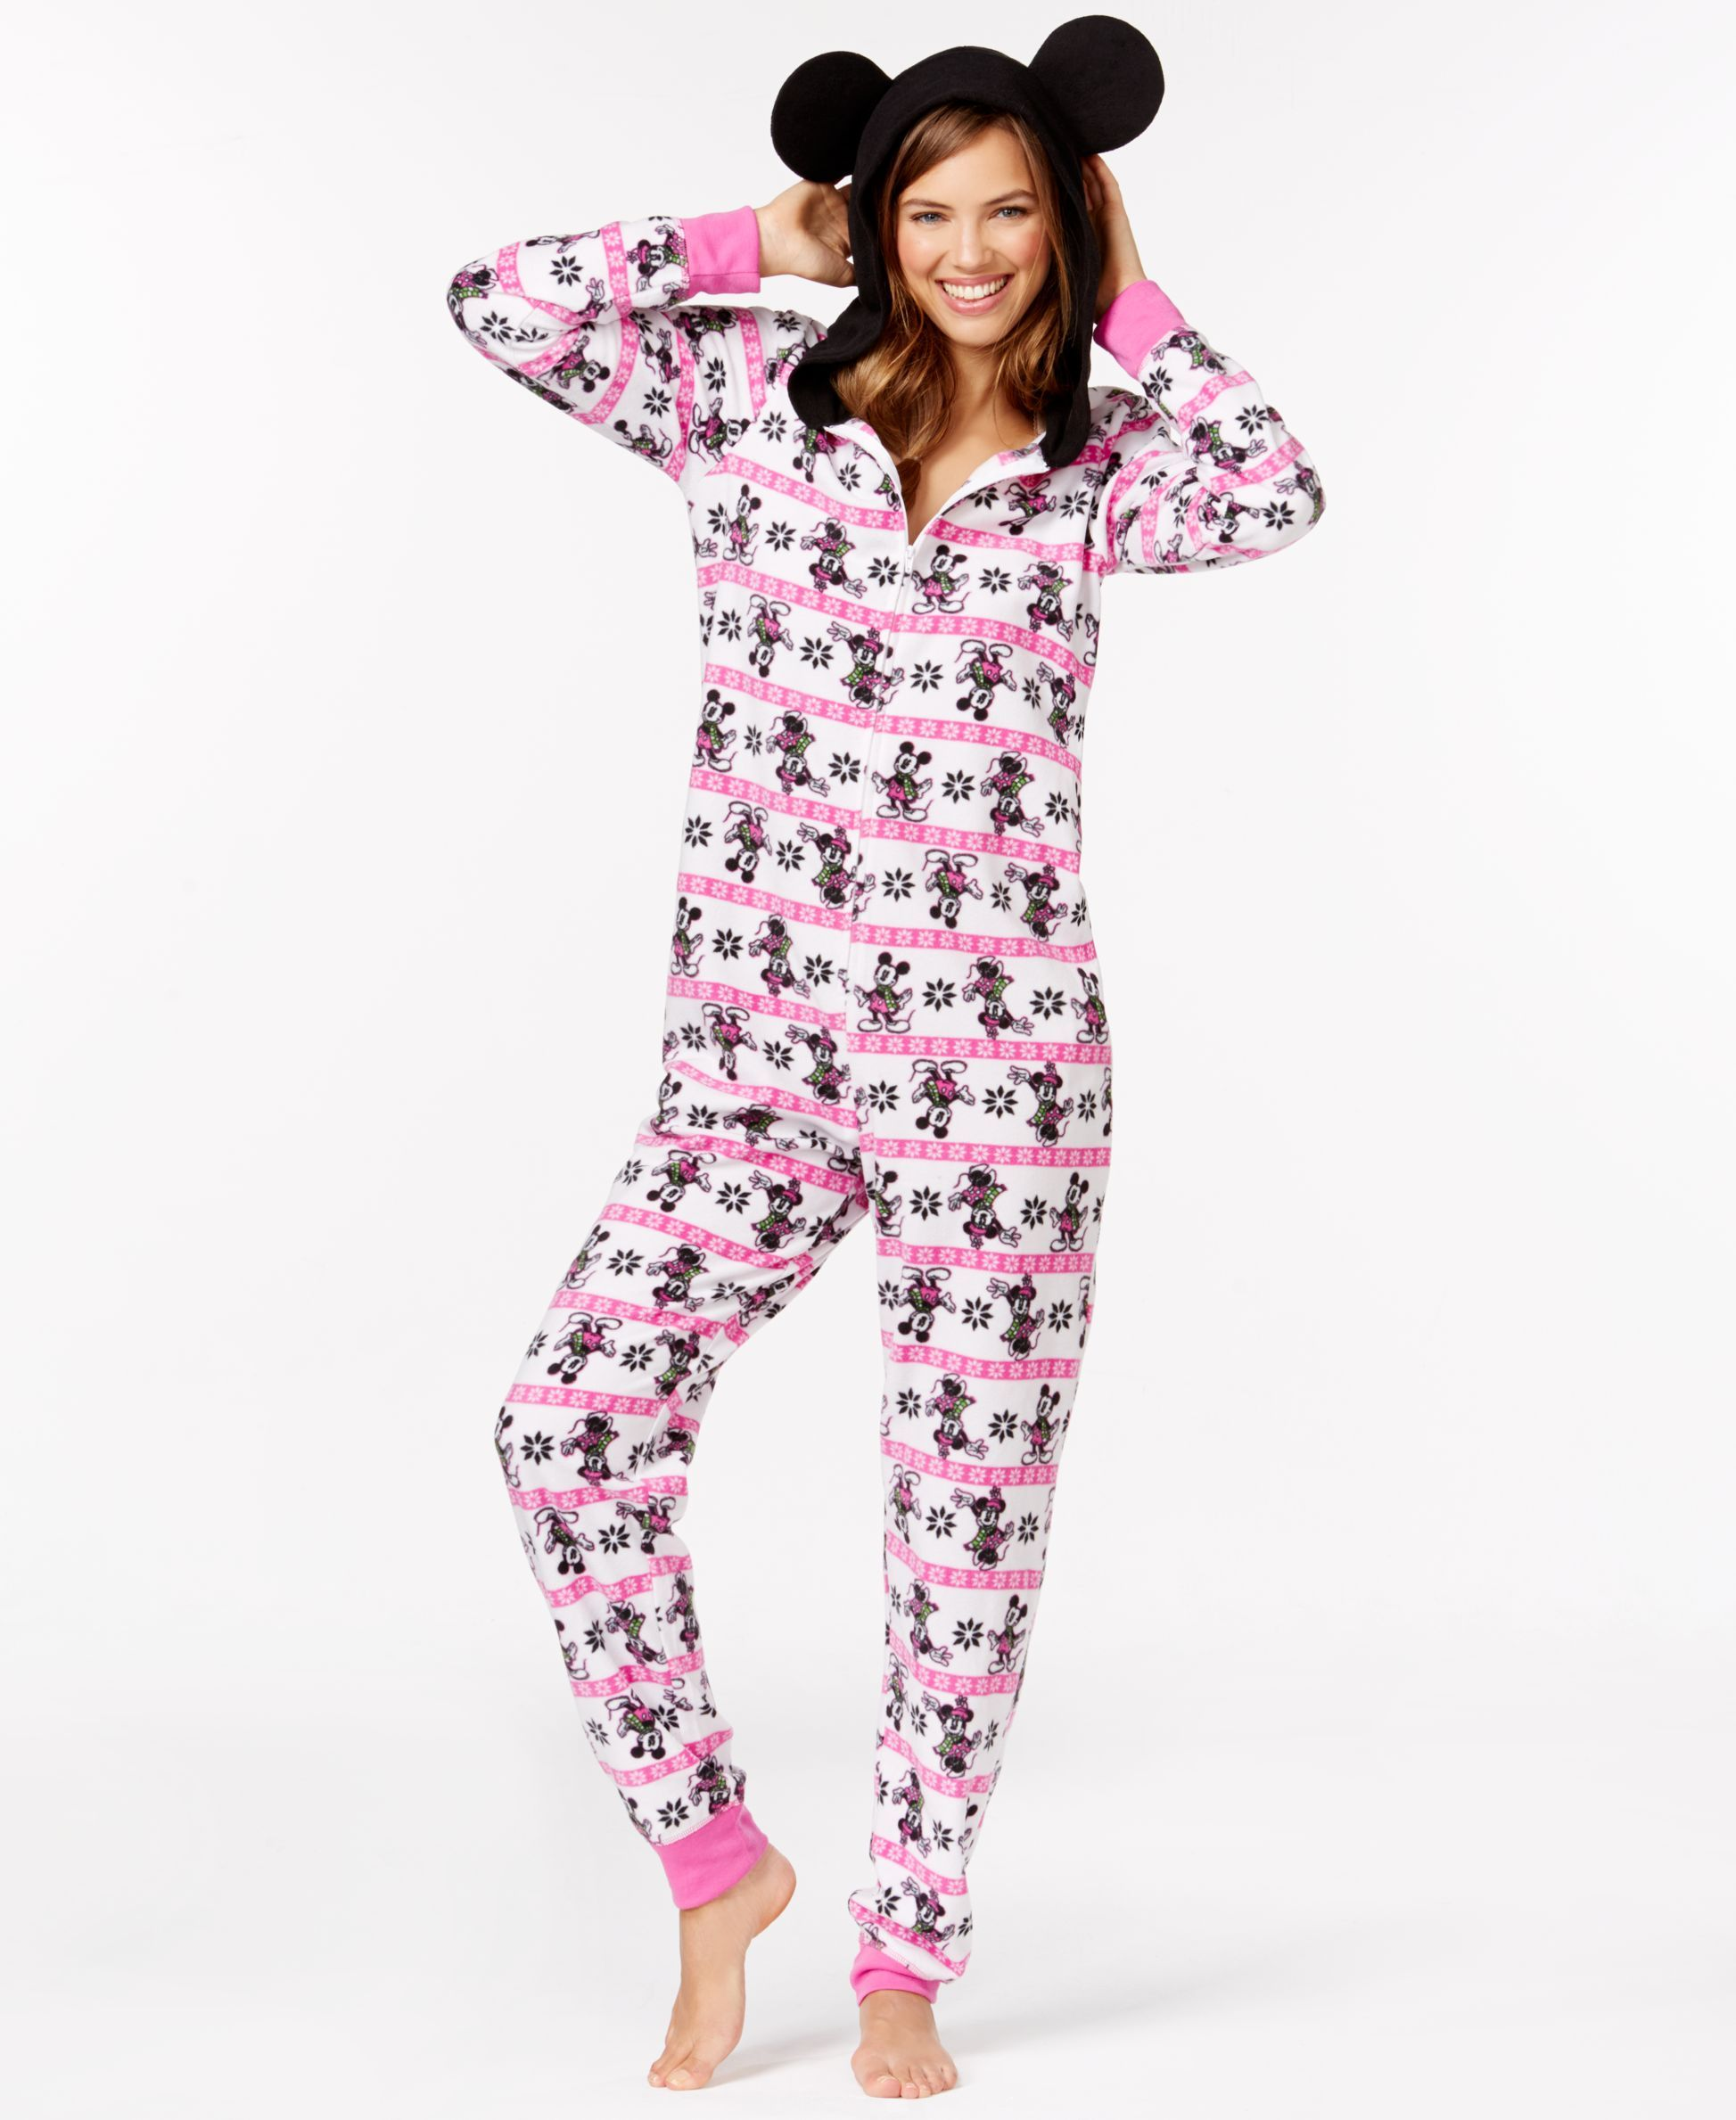 Minnie Mouse Adult Hooded Onesie - Bras dc70e5c9d